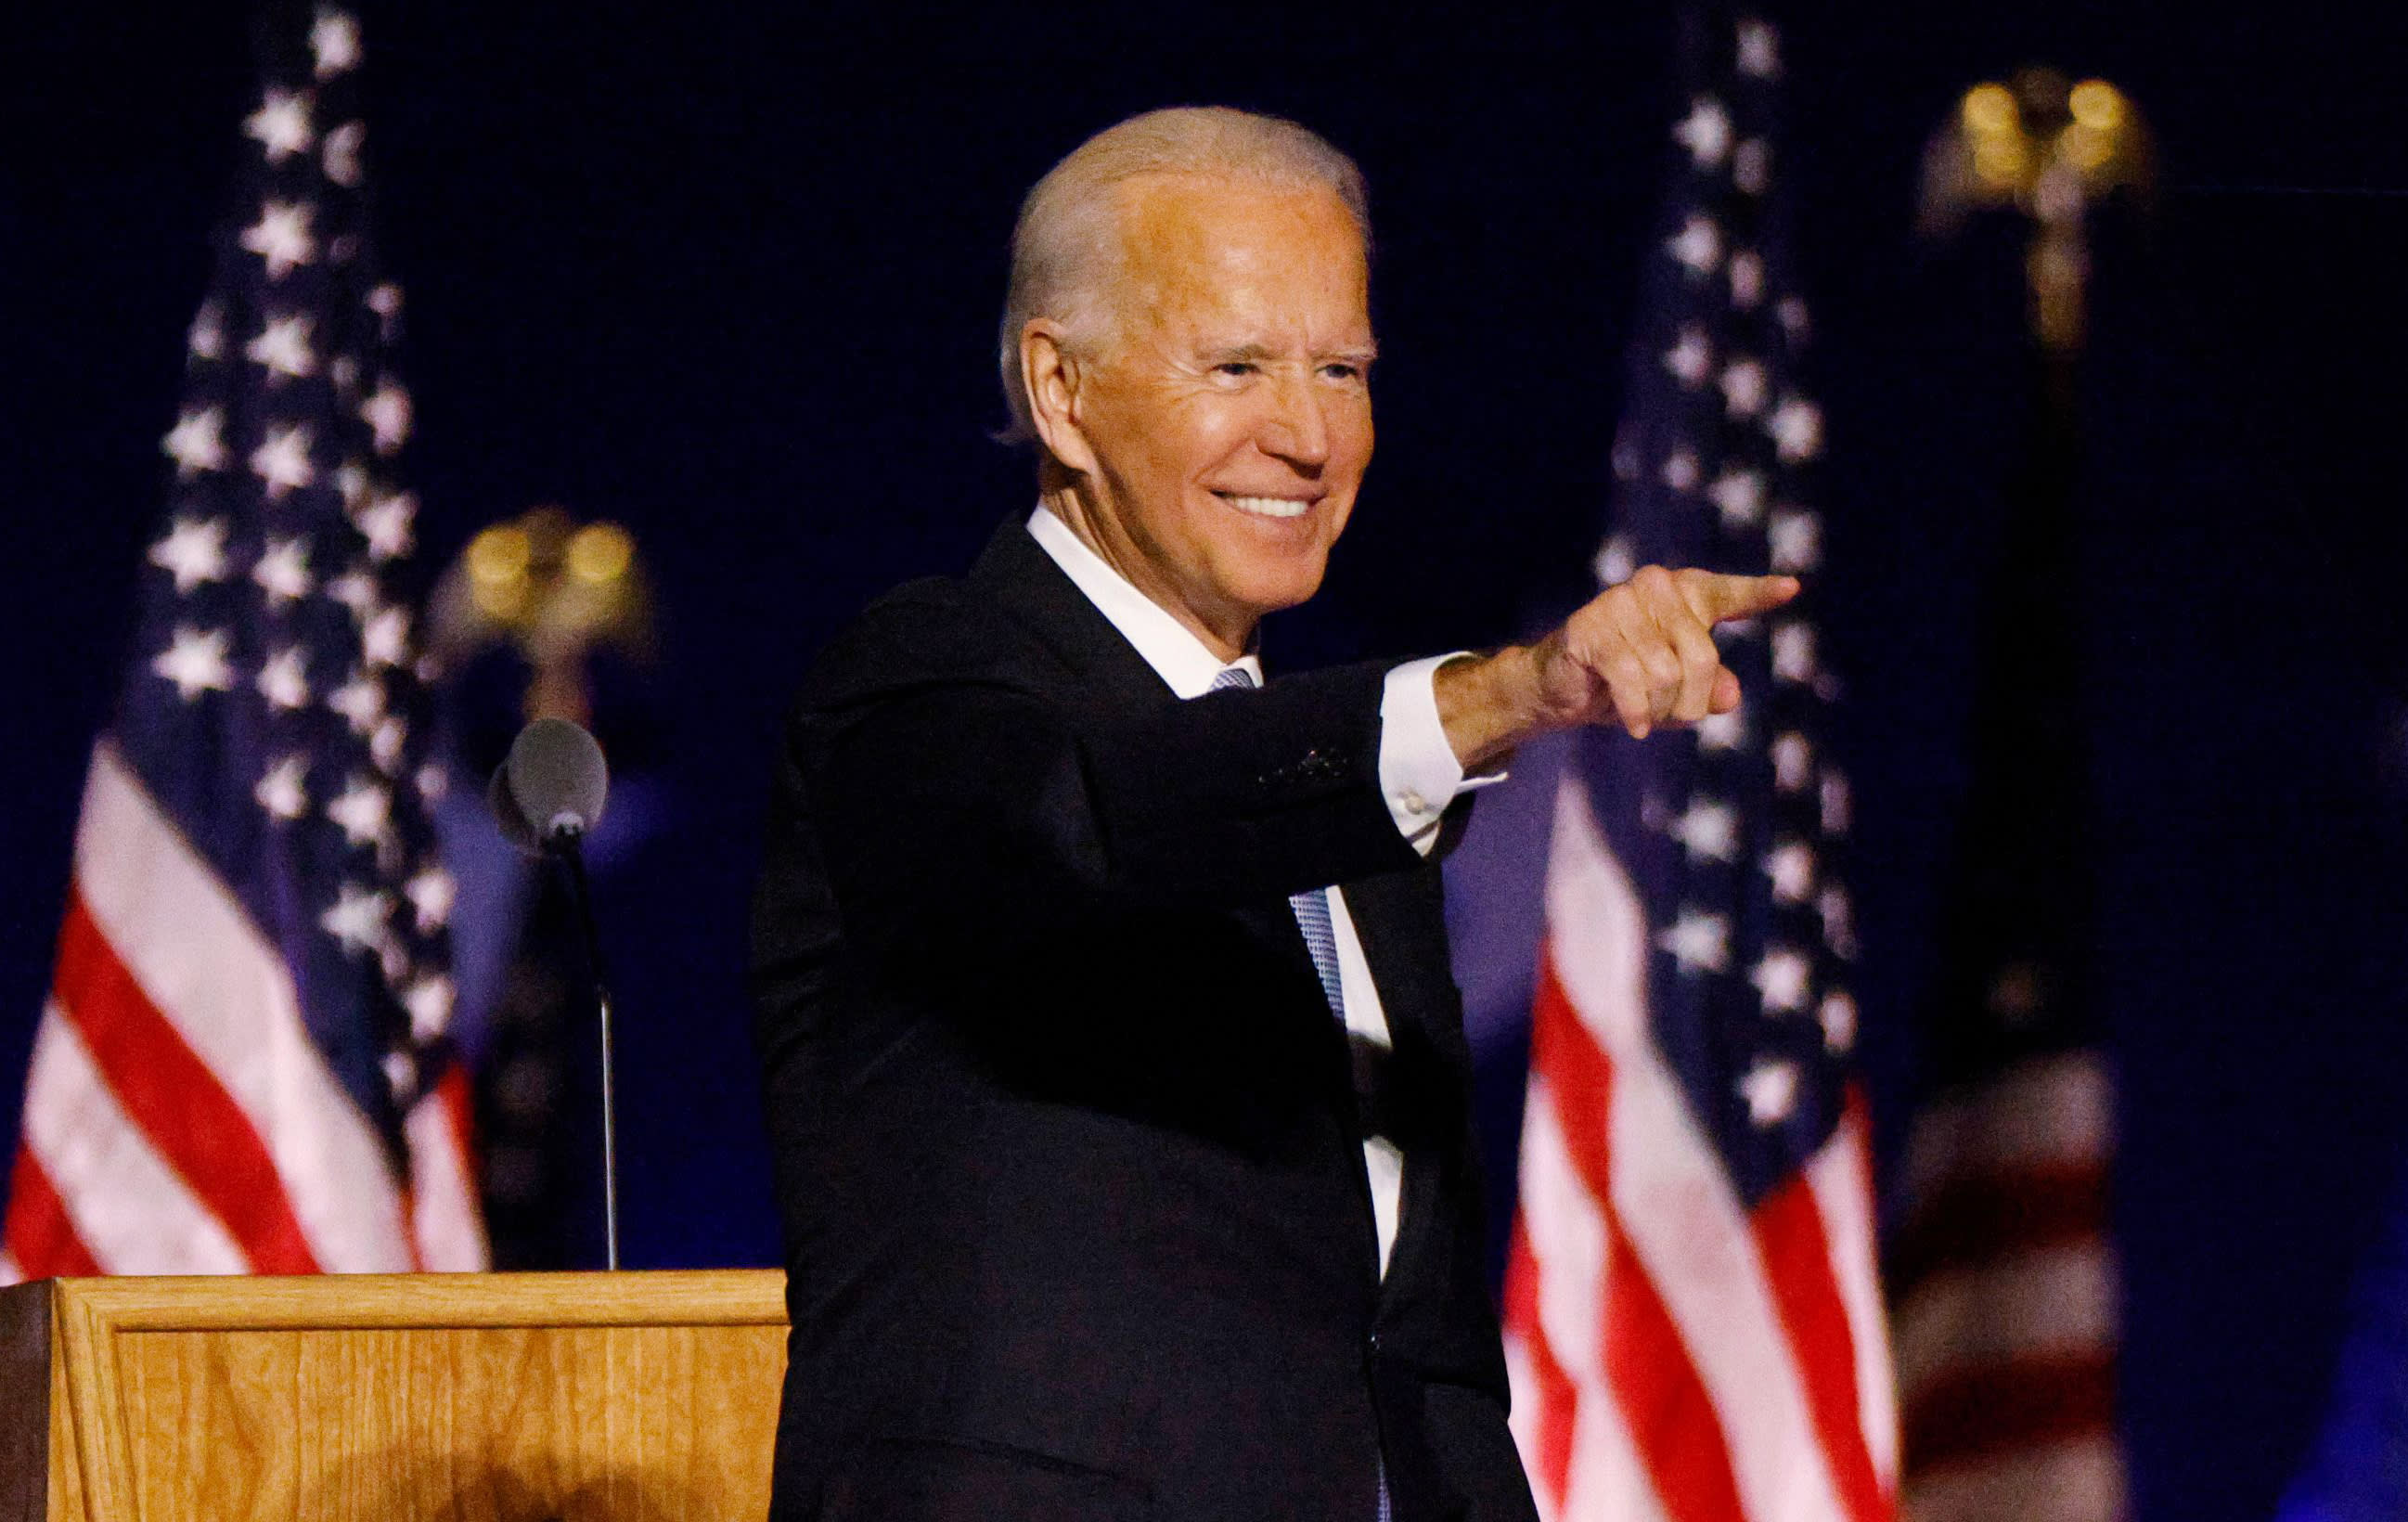 Read Joe Biden's first speech as president-elect